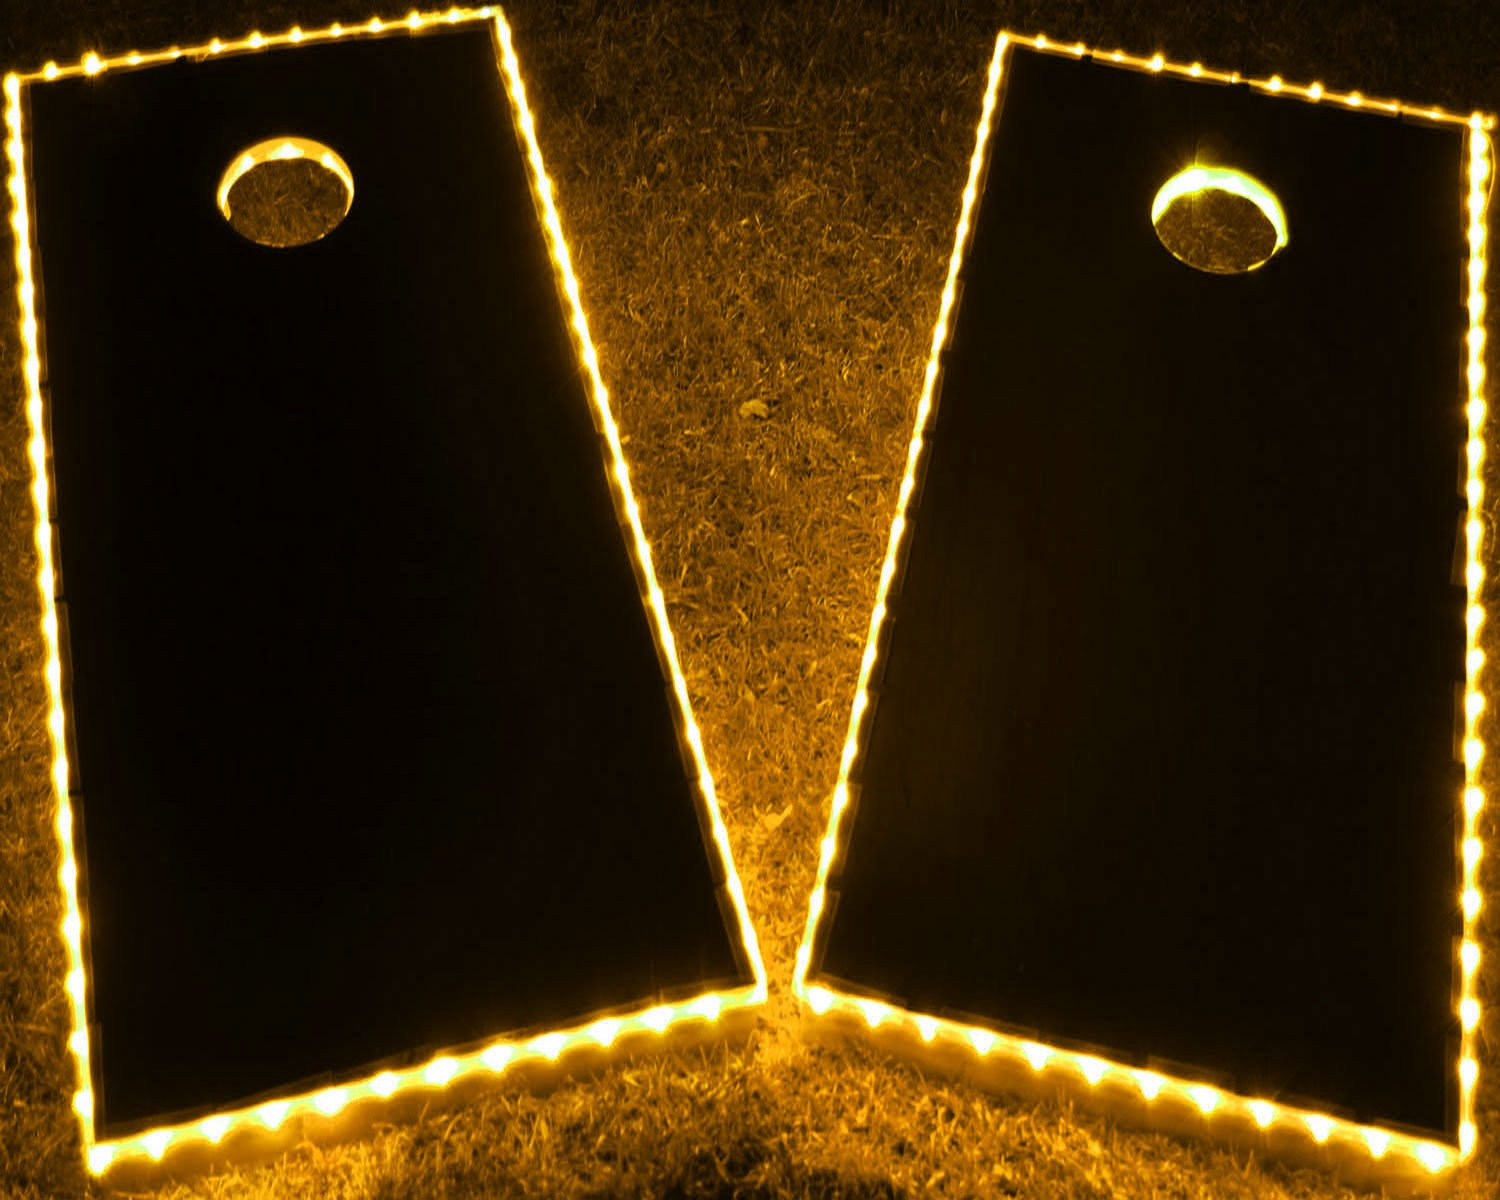 GlowCity LED Cornhole Board Lights - Ultra Bright Lights for Corn Hole and Board, Fits 2 x Boards - Waterproof and Durable Cable Ideal for Family Outdoor Games or Backyard Glow in Dark Fun (Yellow) by GlowCity